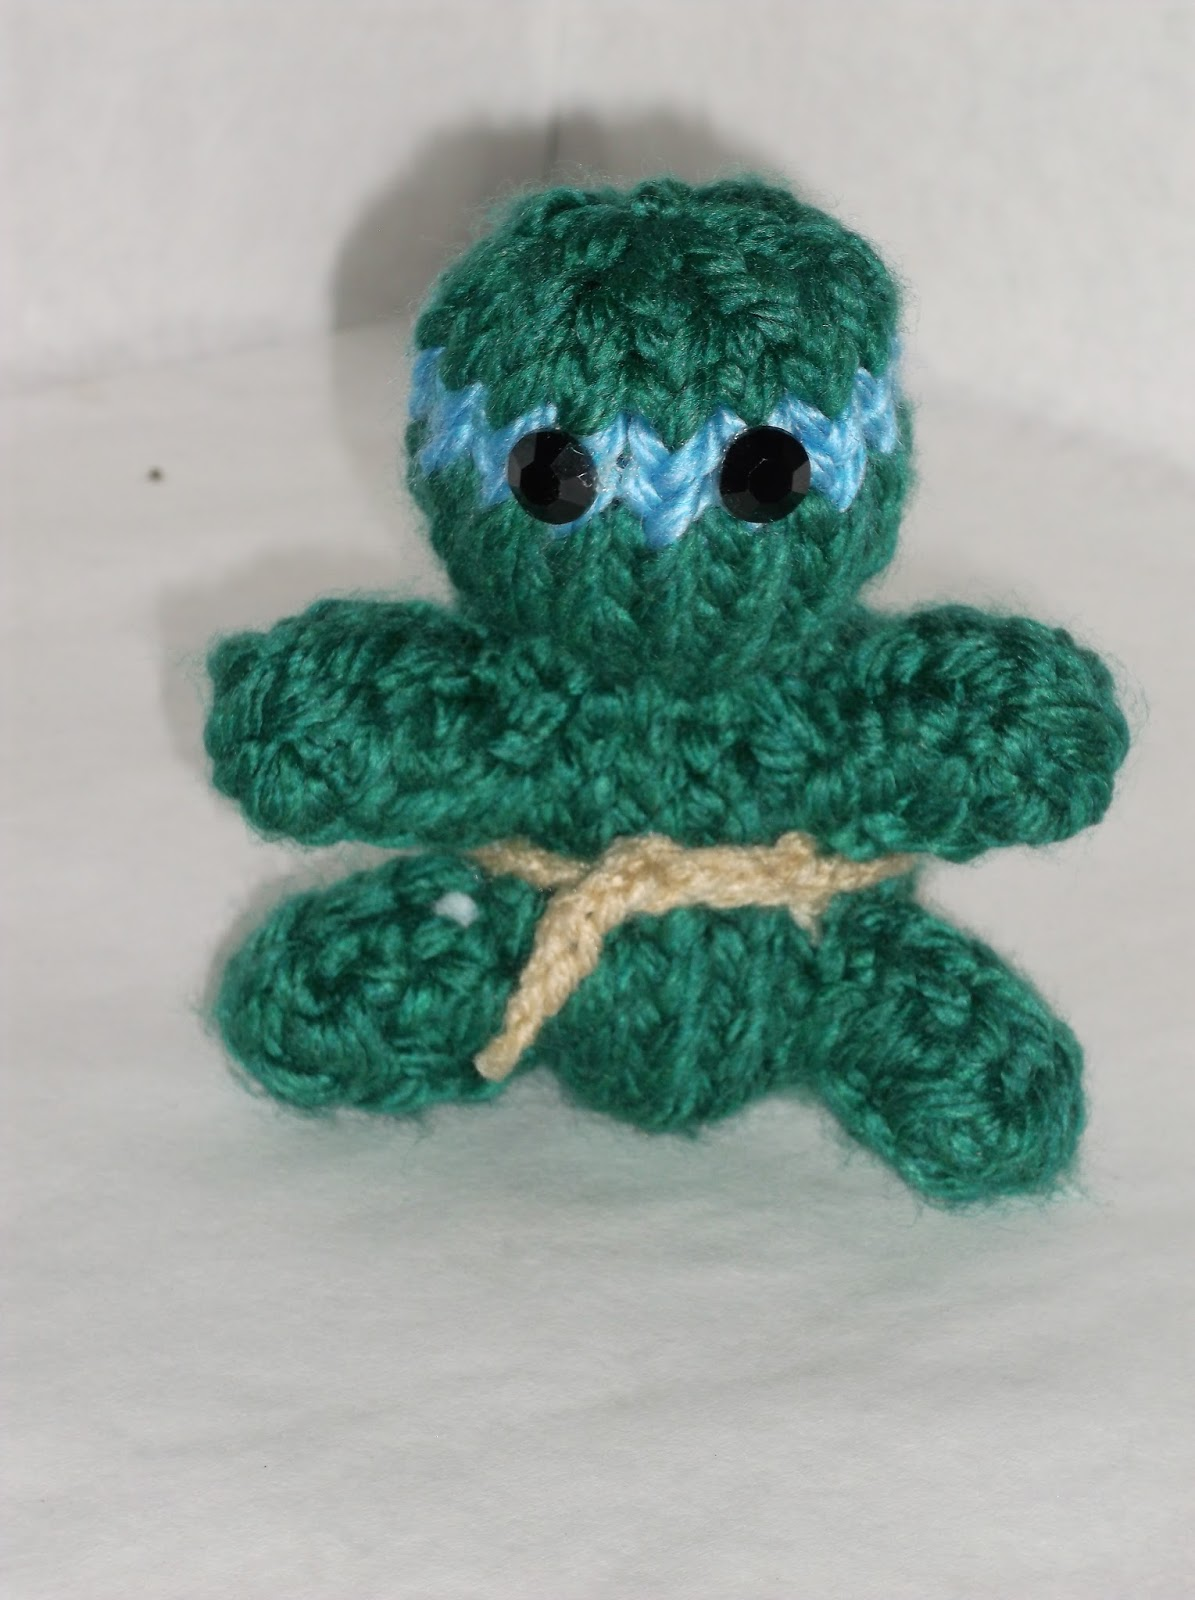 Amigurumi How To Decrease : The Loom Muse : How to Loom Knit Amigurumi Body and Head